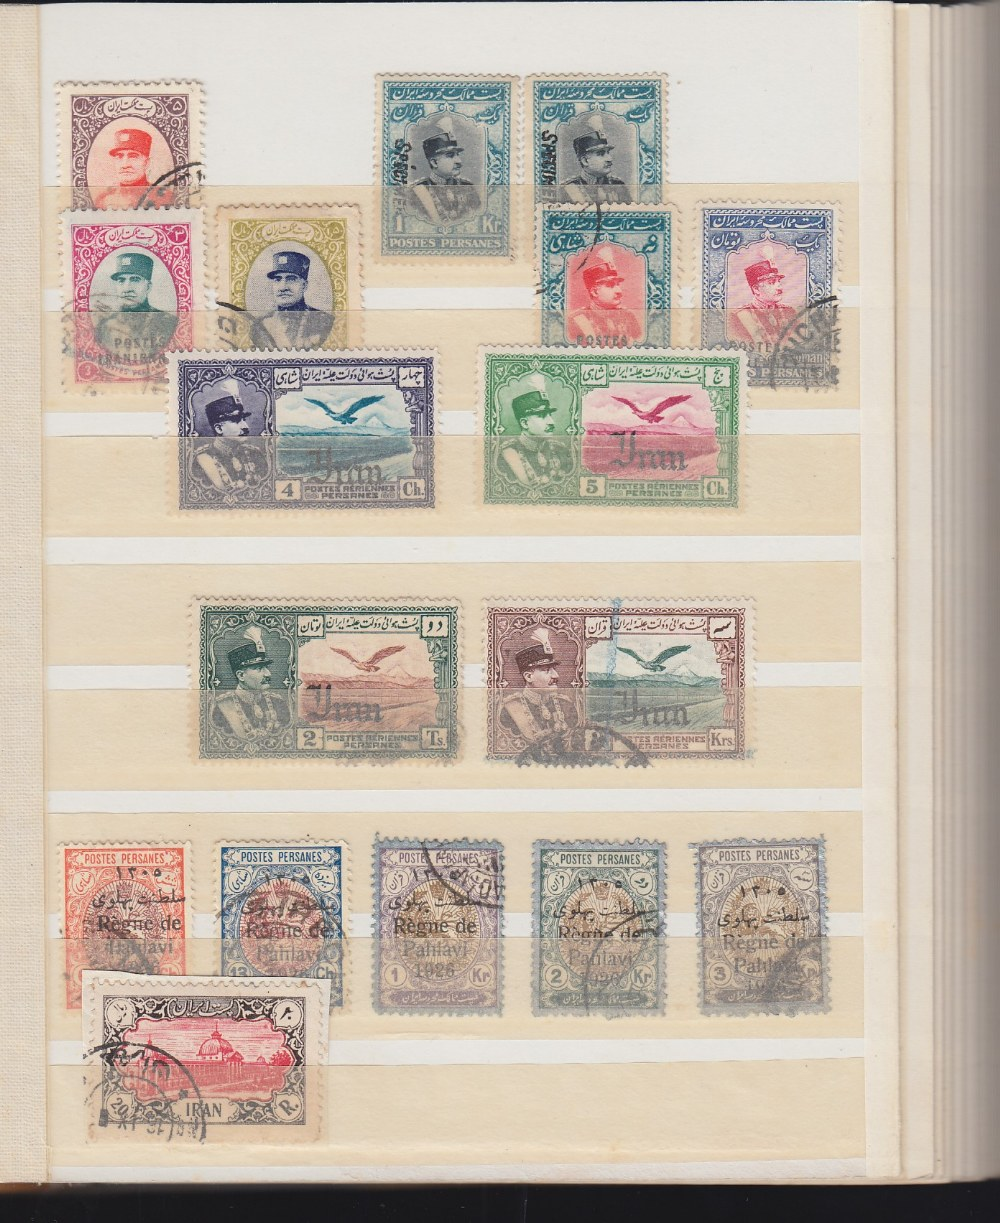 STAMPS IRAN Mint and used accumulation in small stock book early through to 1980's - Image 2 of 2